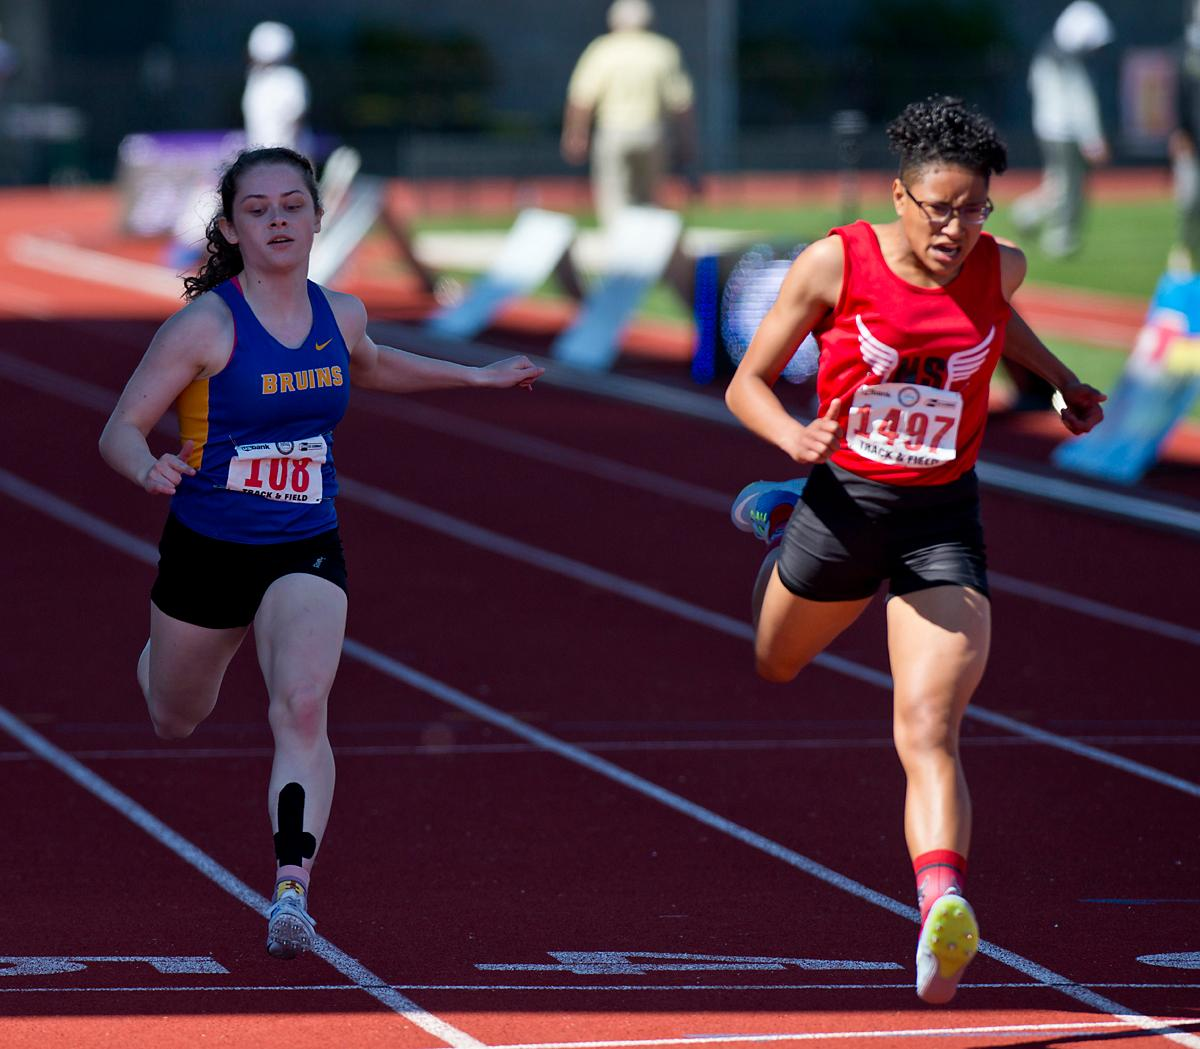 Rebekah Miller from North Salem wins the 6A Girls 200 meter Dash with a time of 24.58 at the OSAA Championship at Hayward Field on Saturday. Photo by Dan Morrison, Oregon News Lab